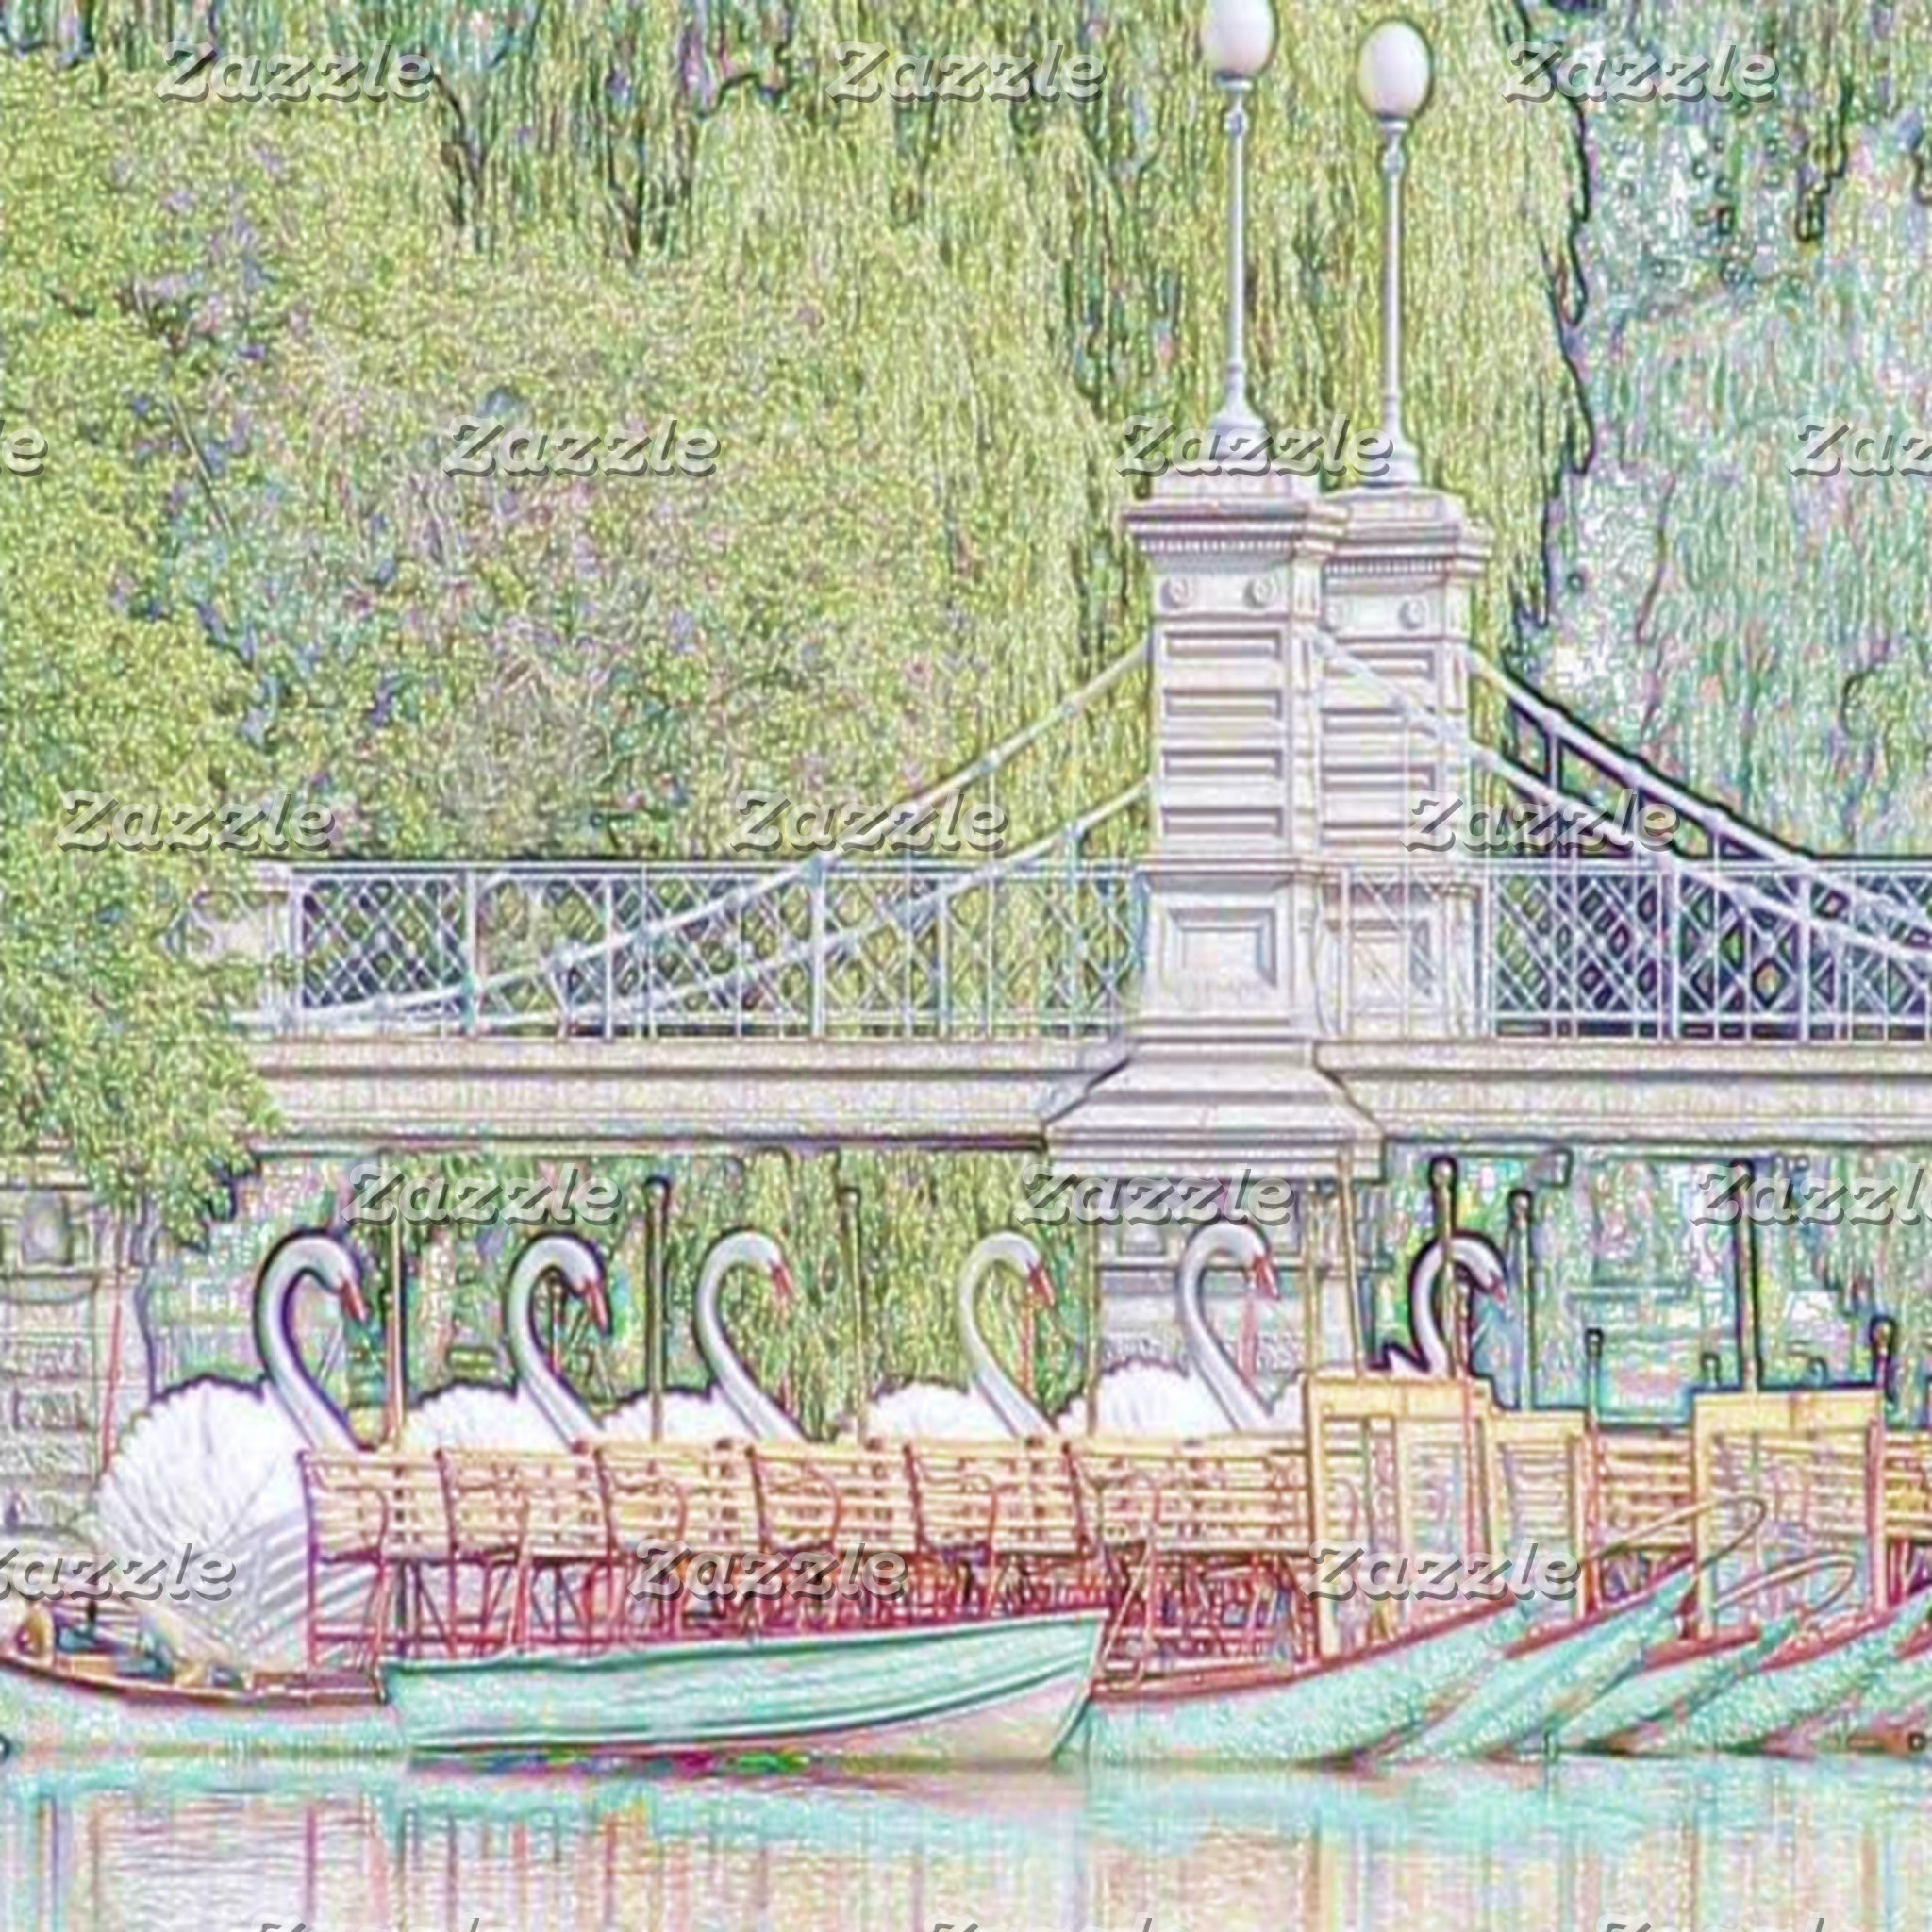 Boston Swan Boats Pencil and Ink